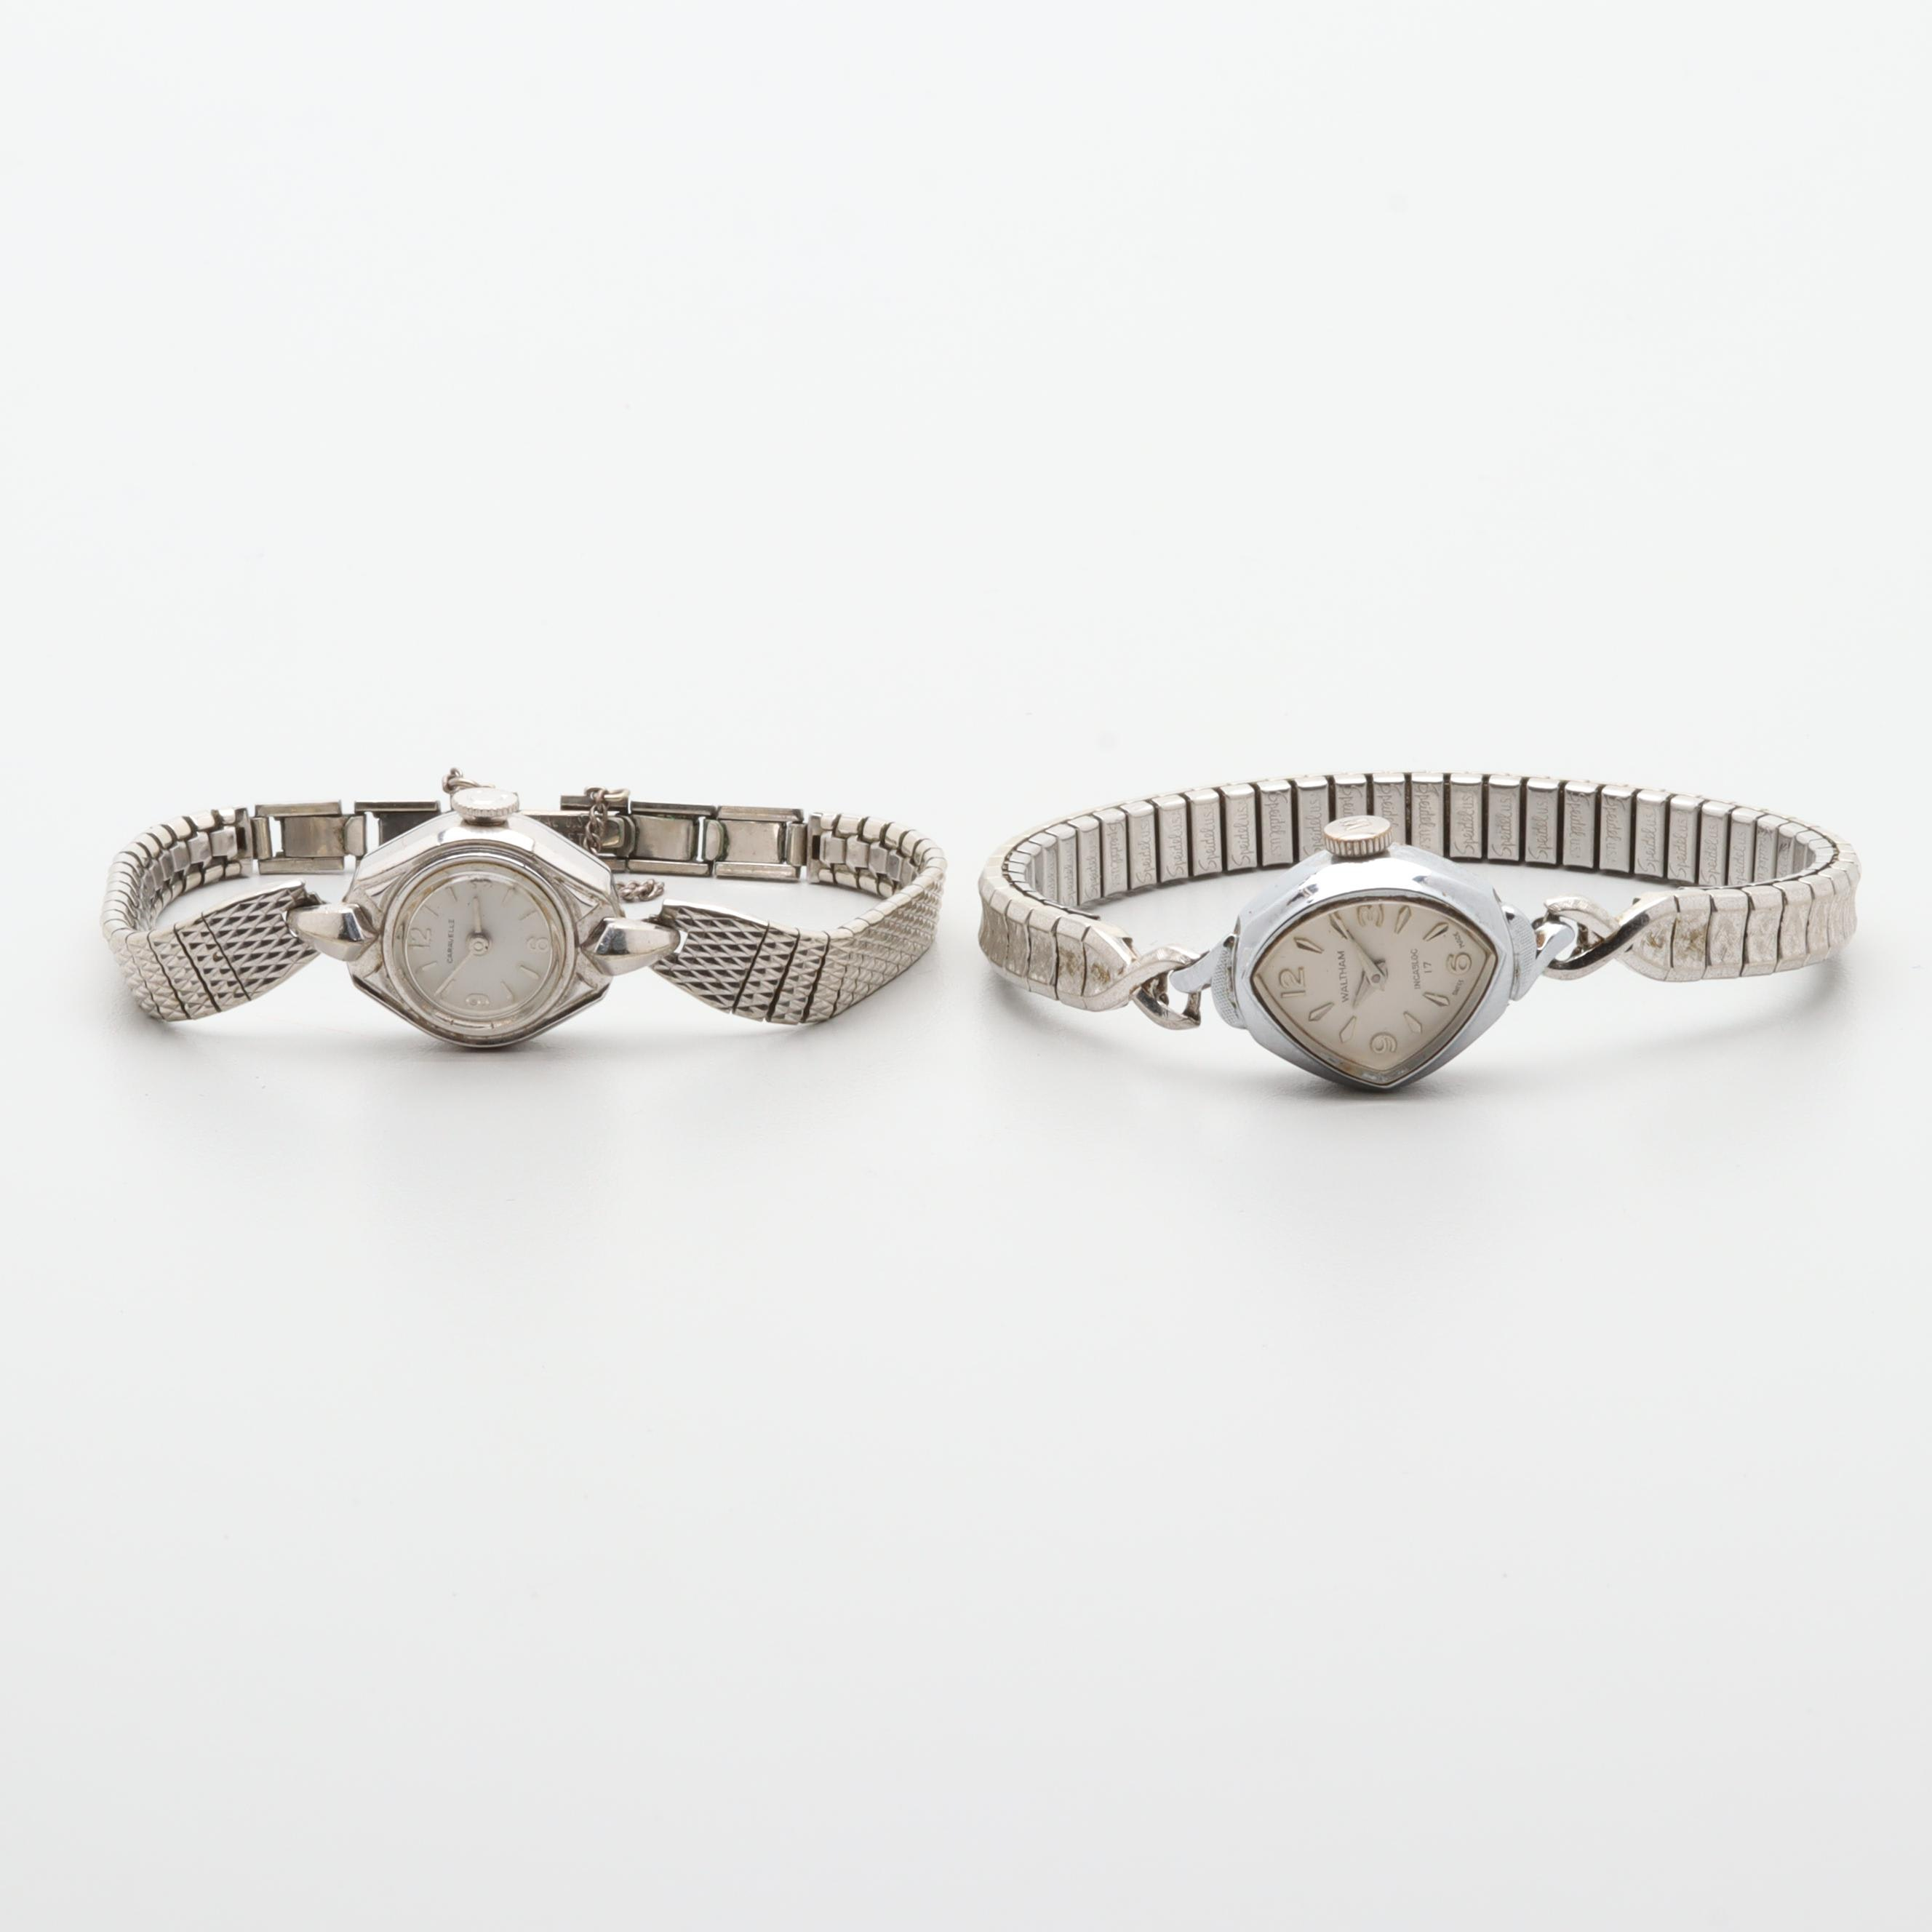 Waltham and Caravelle Stem Wind Wristwatches